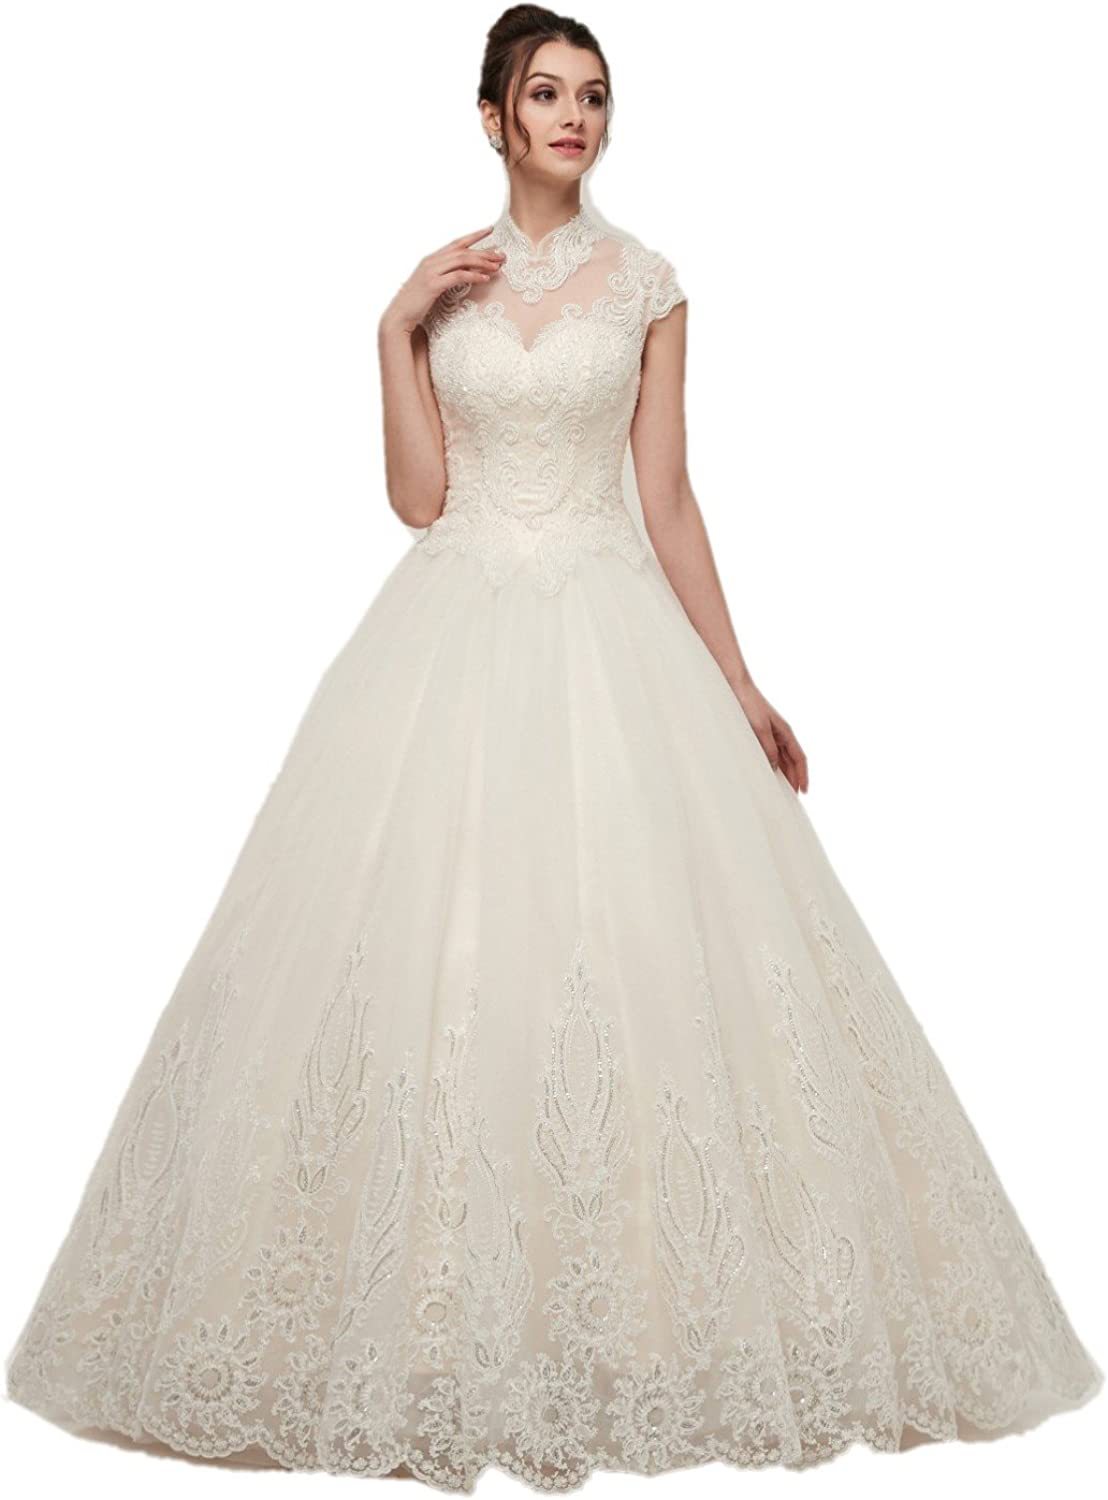 Darcy74Dulles Women's Elegant Embroidery Wedding Dress Backless White High Neck Wedding Gown Bridal Dress with Sequins